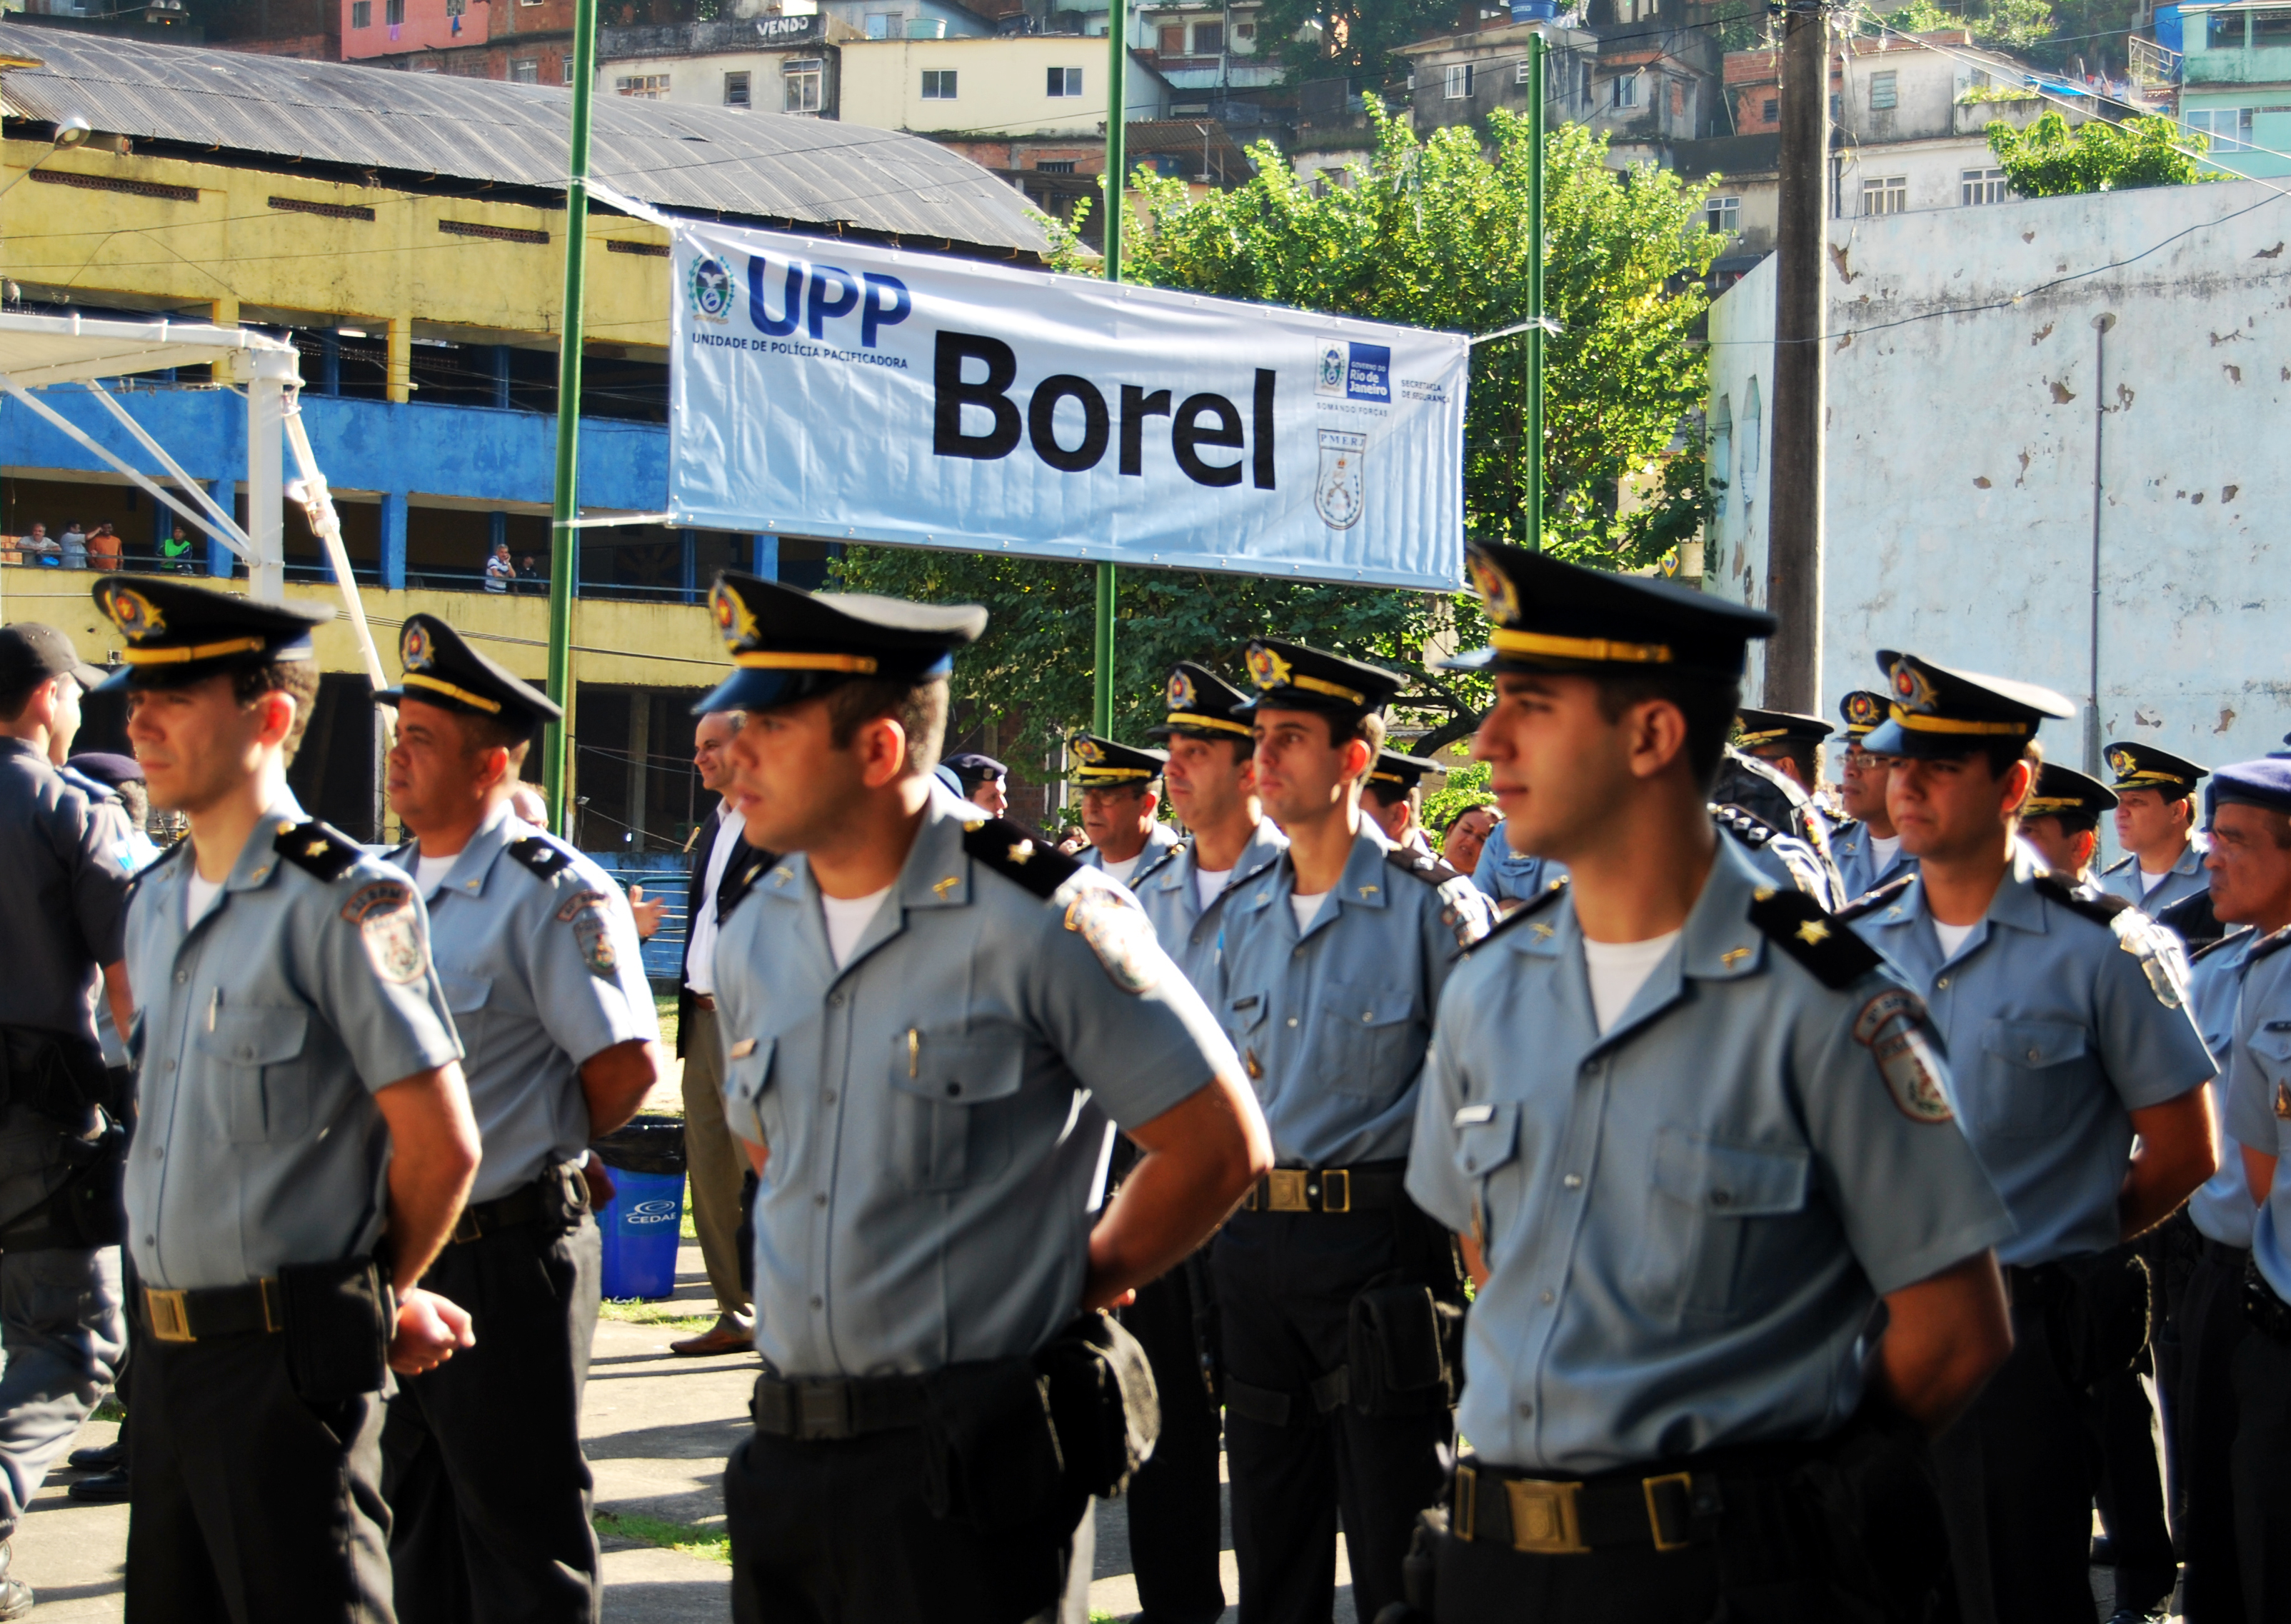 Police officers in Borel (Priscila Marotti/Seseg-RJ)